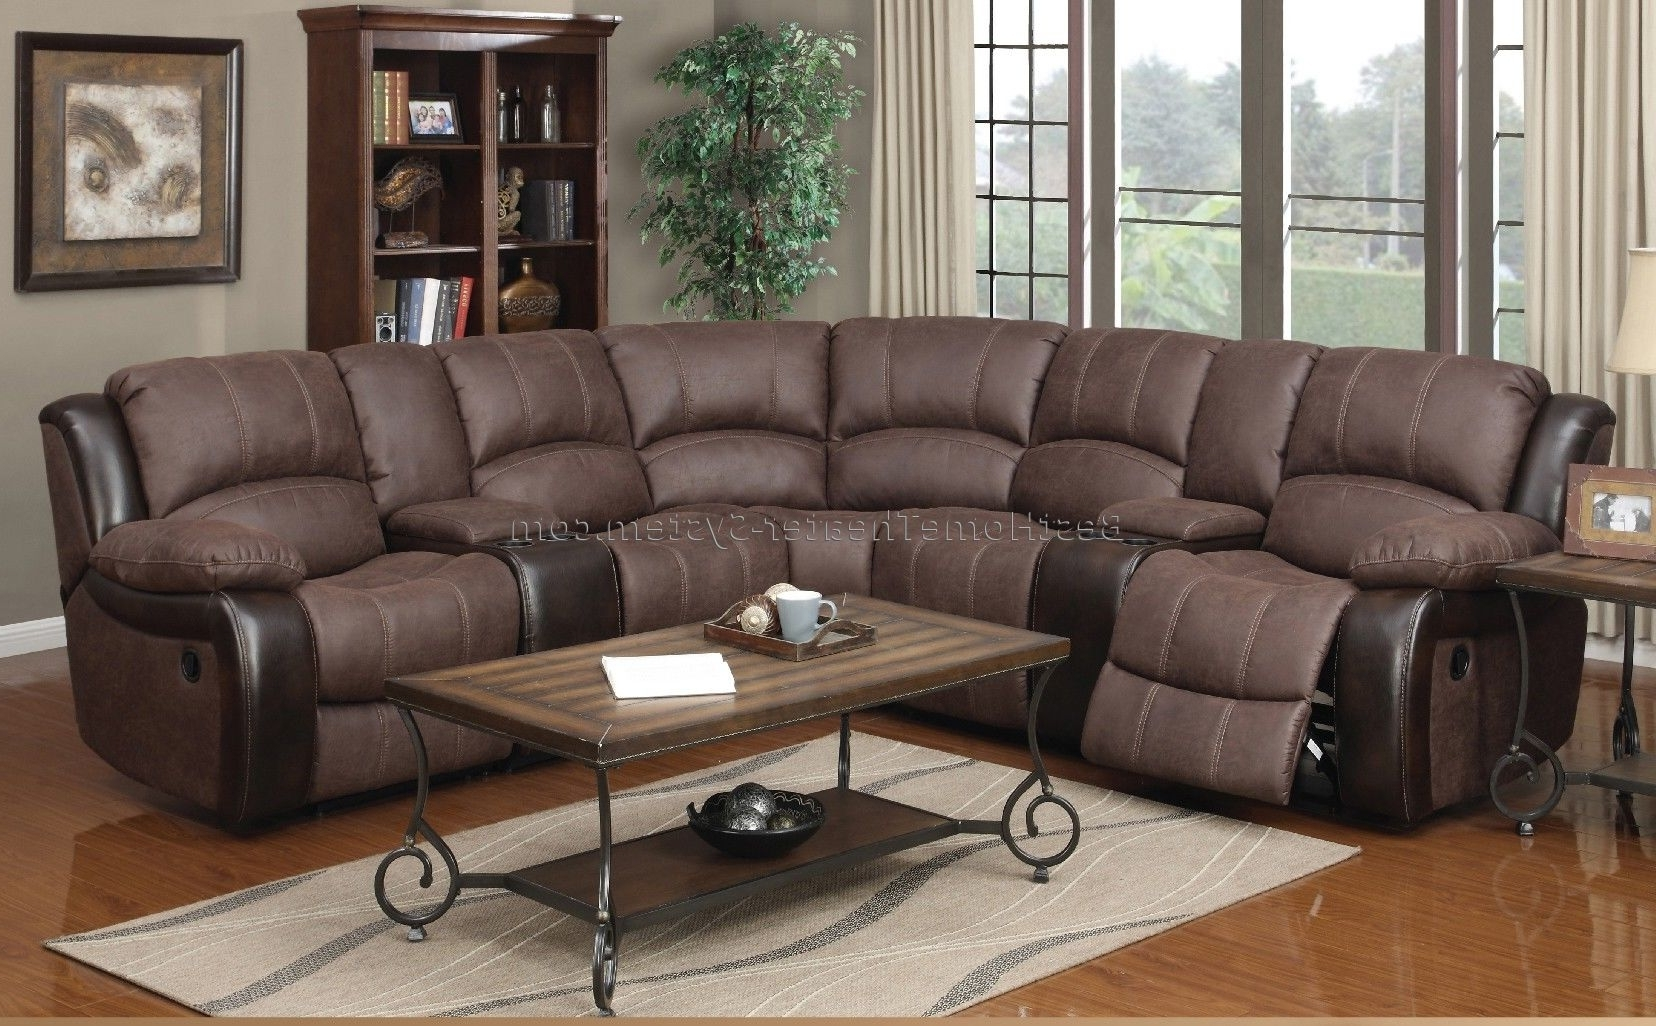 Theater Sectional Sofas – Home And Textiles Intended For Newest Theatre Sectional Sofas (View 11 of 15)